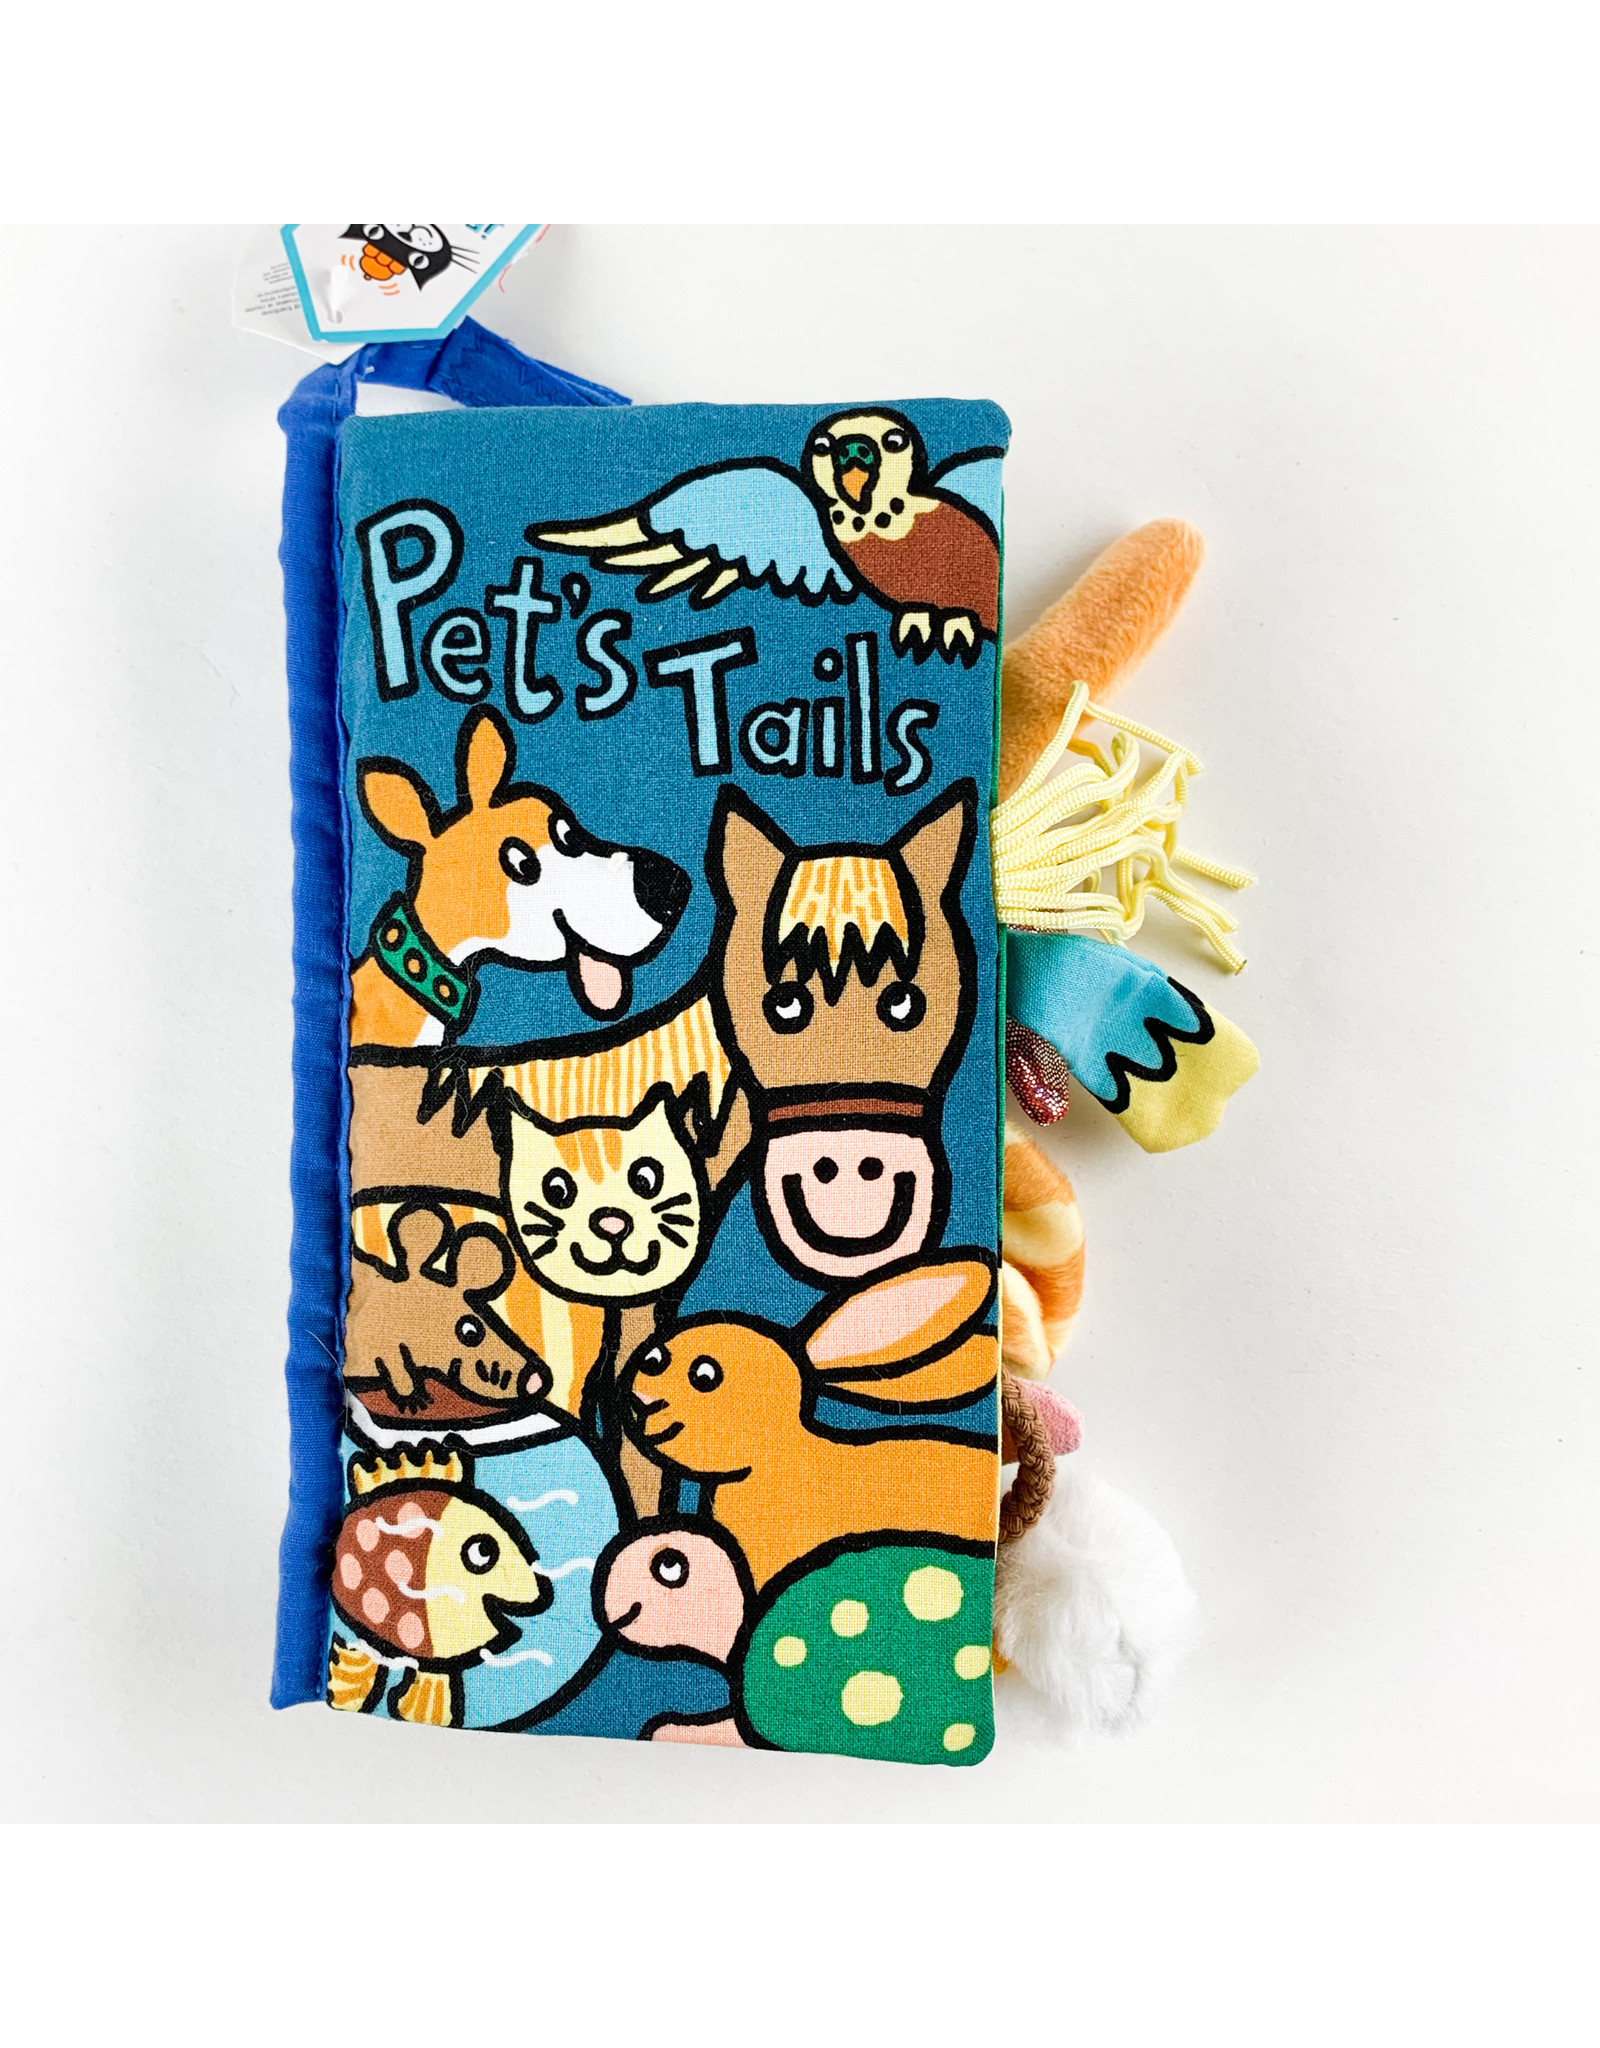 jelly cat Pet tails book